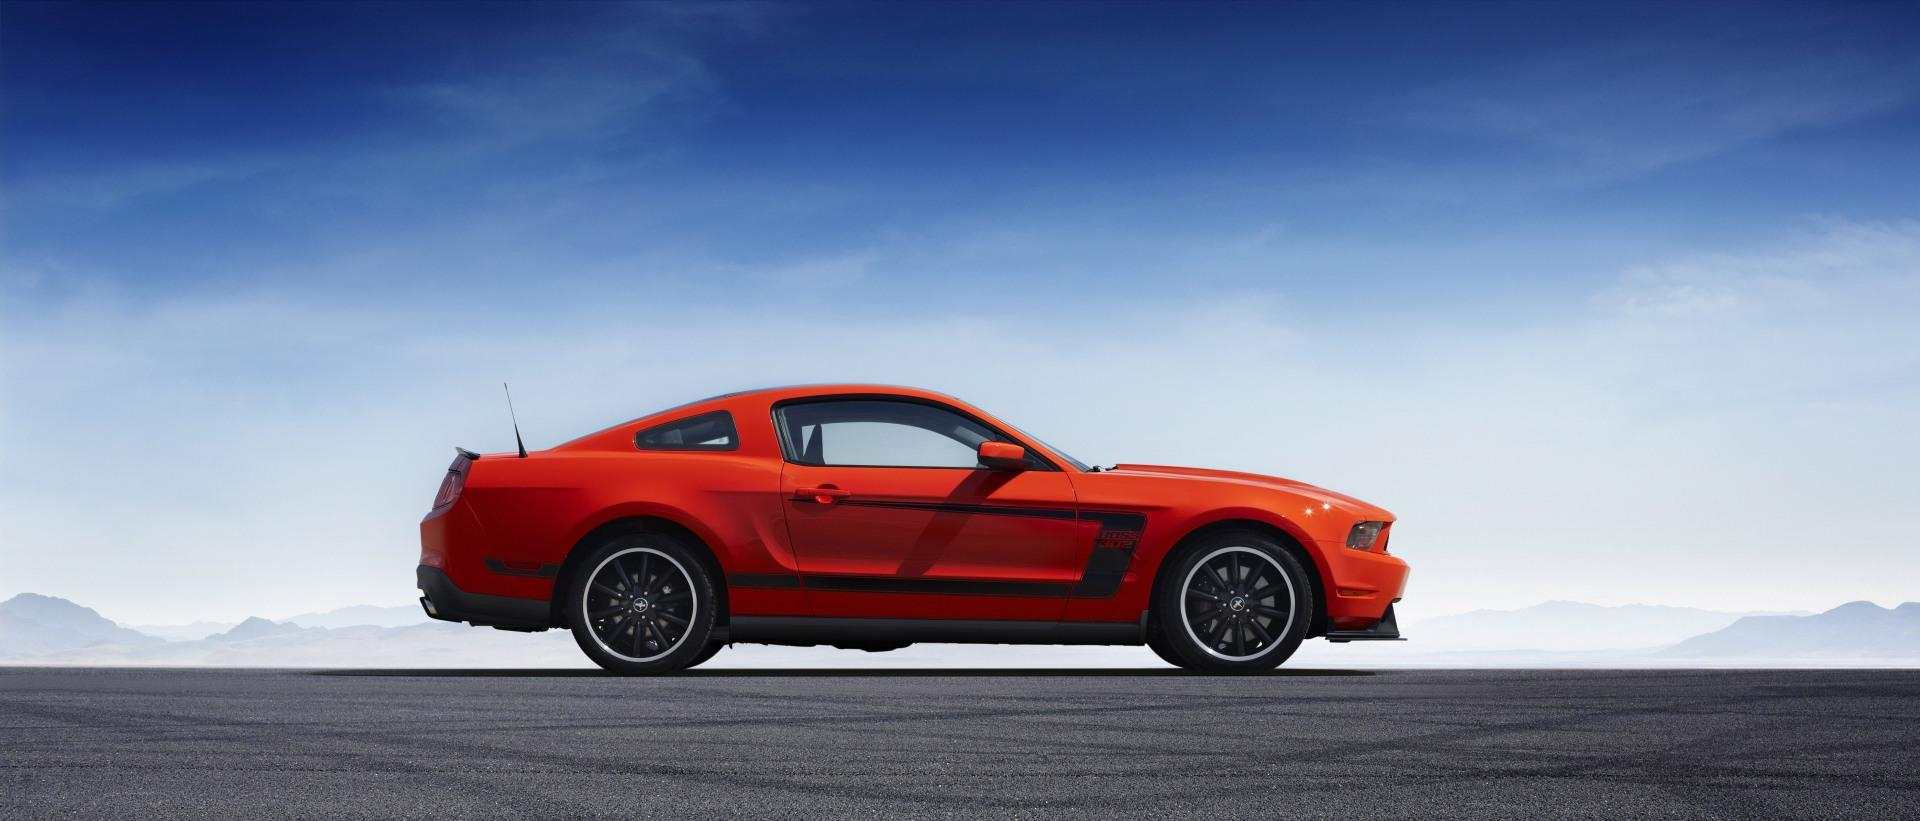 Ferrari F1 Car Wallpaper 2012 Ford Mustang Boss 302 News And Information